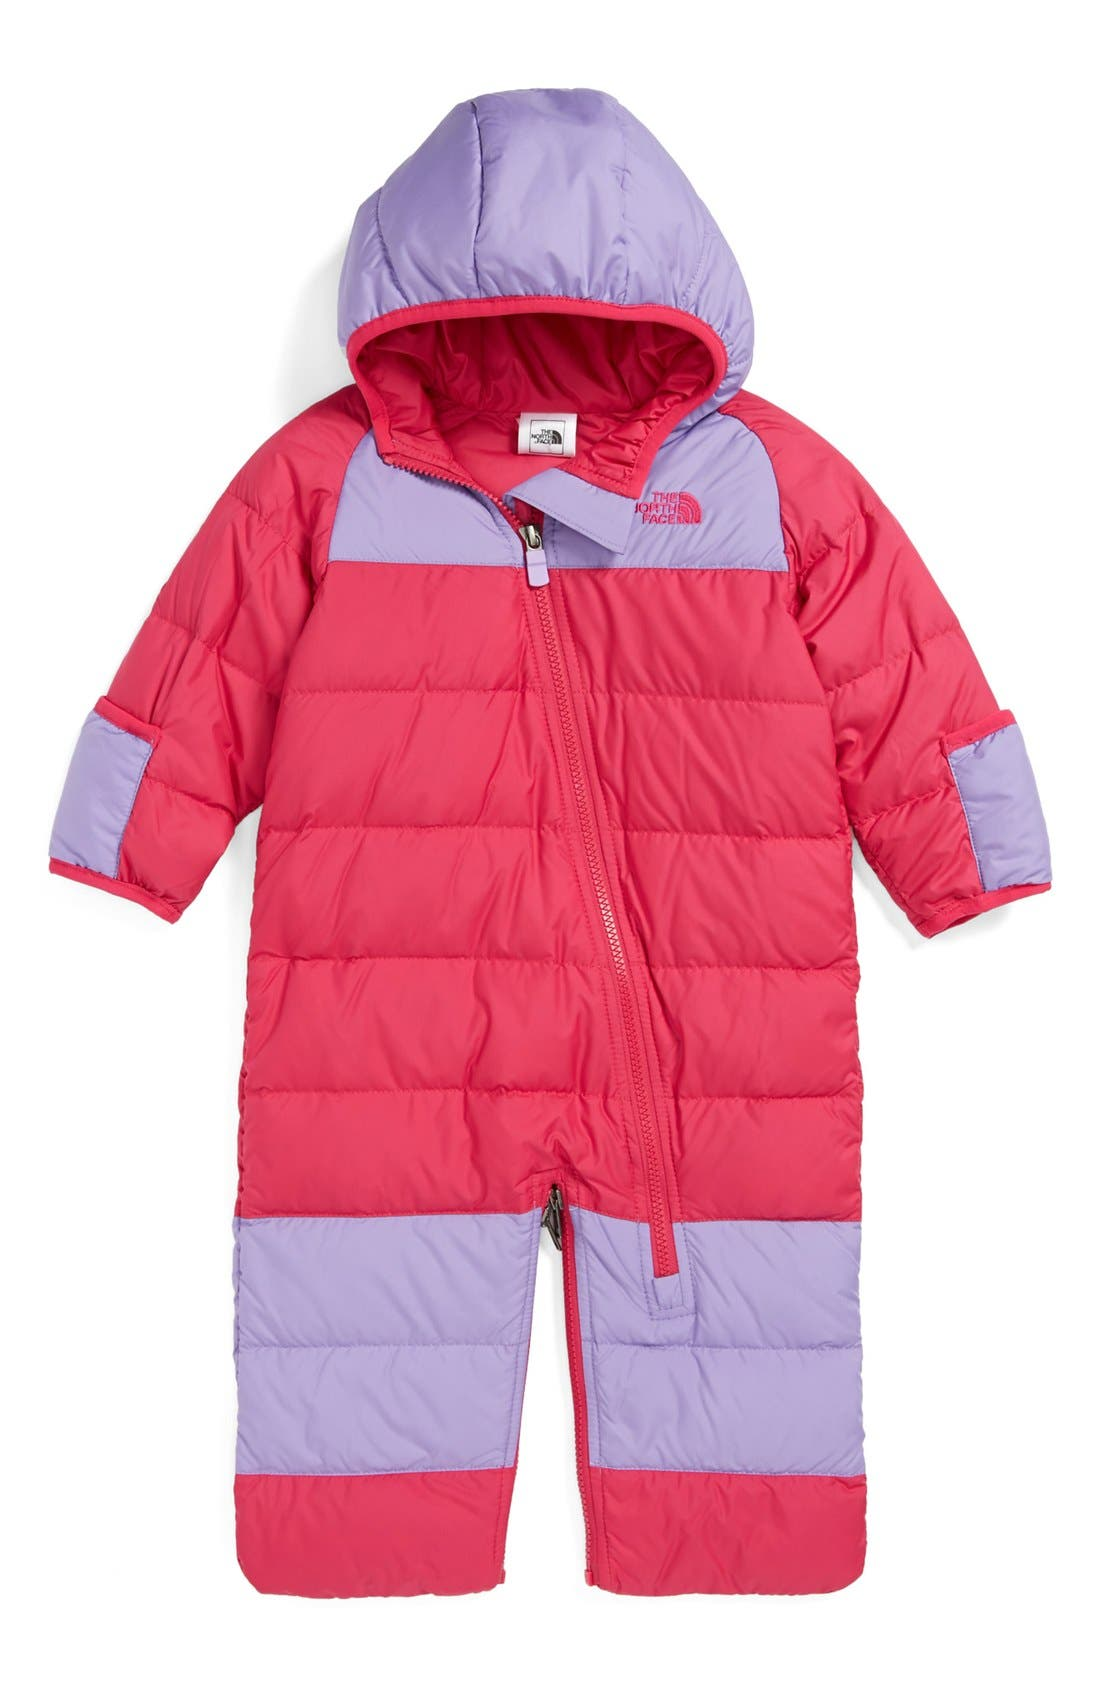 Alternate Image 1 Selected - The North Face 'Lil' Snuggler' Down Bunting (Baby Girls)